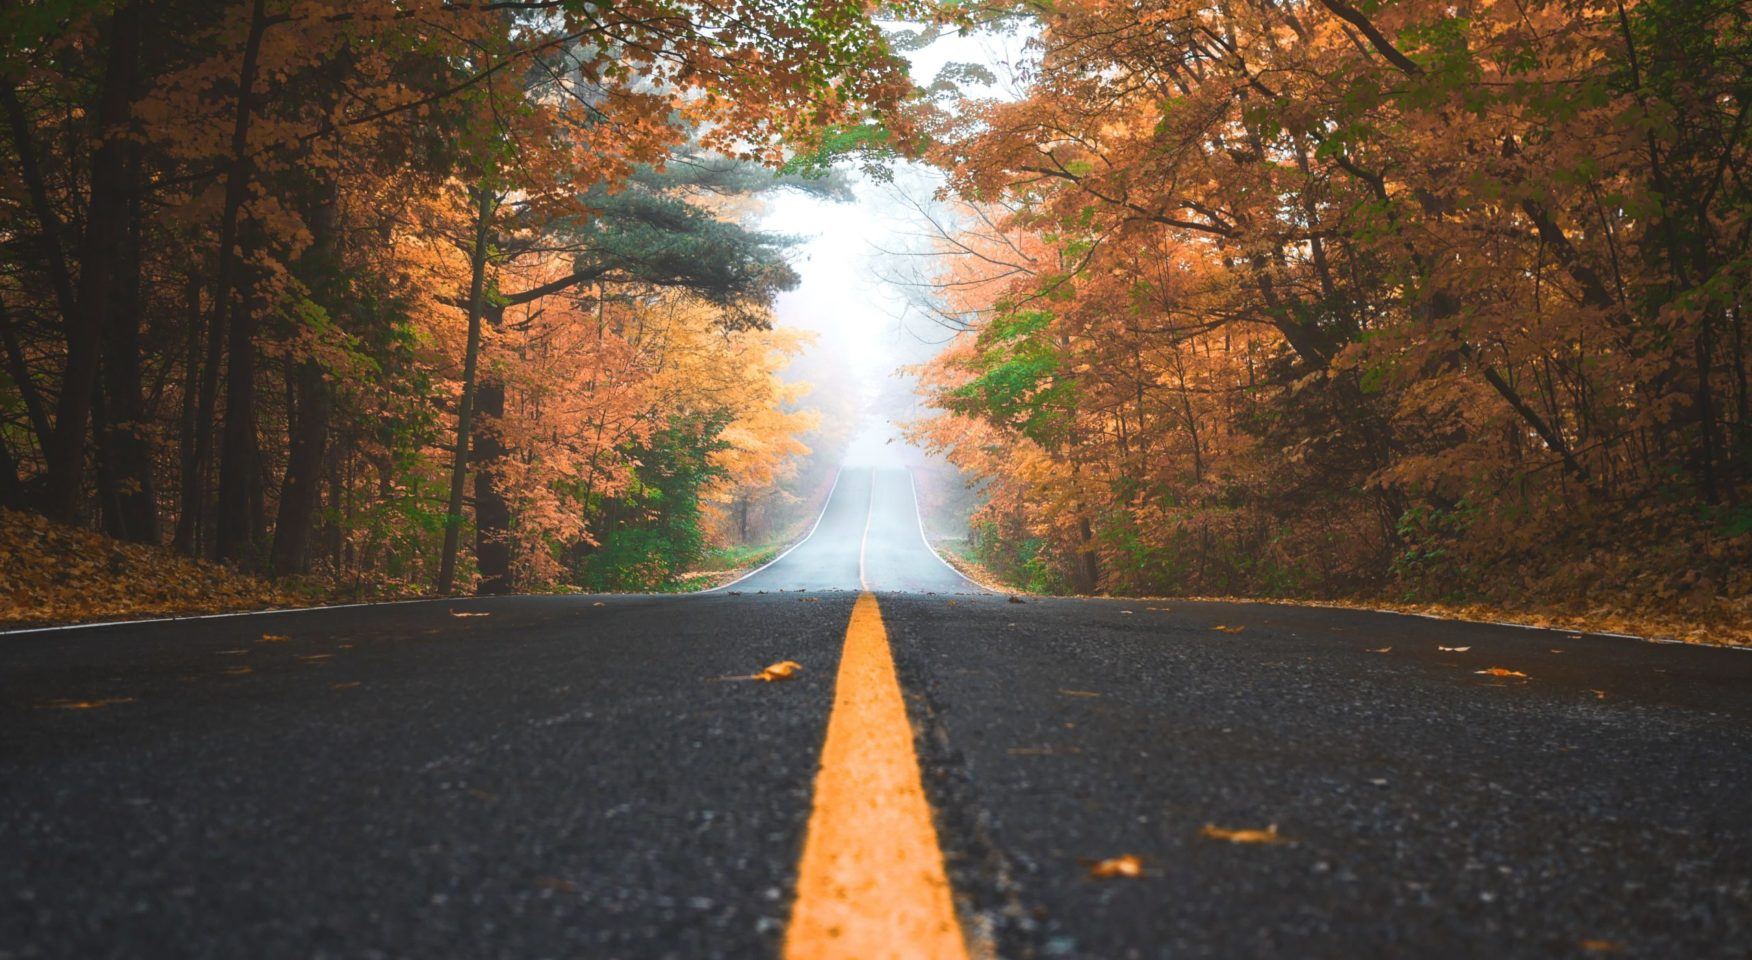 yellow line on road in autumn